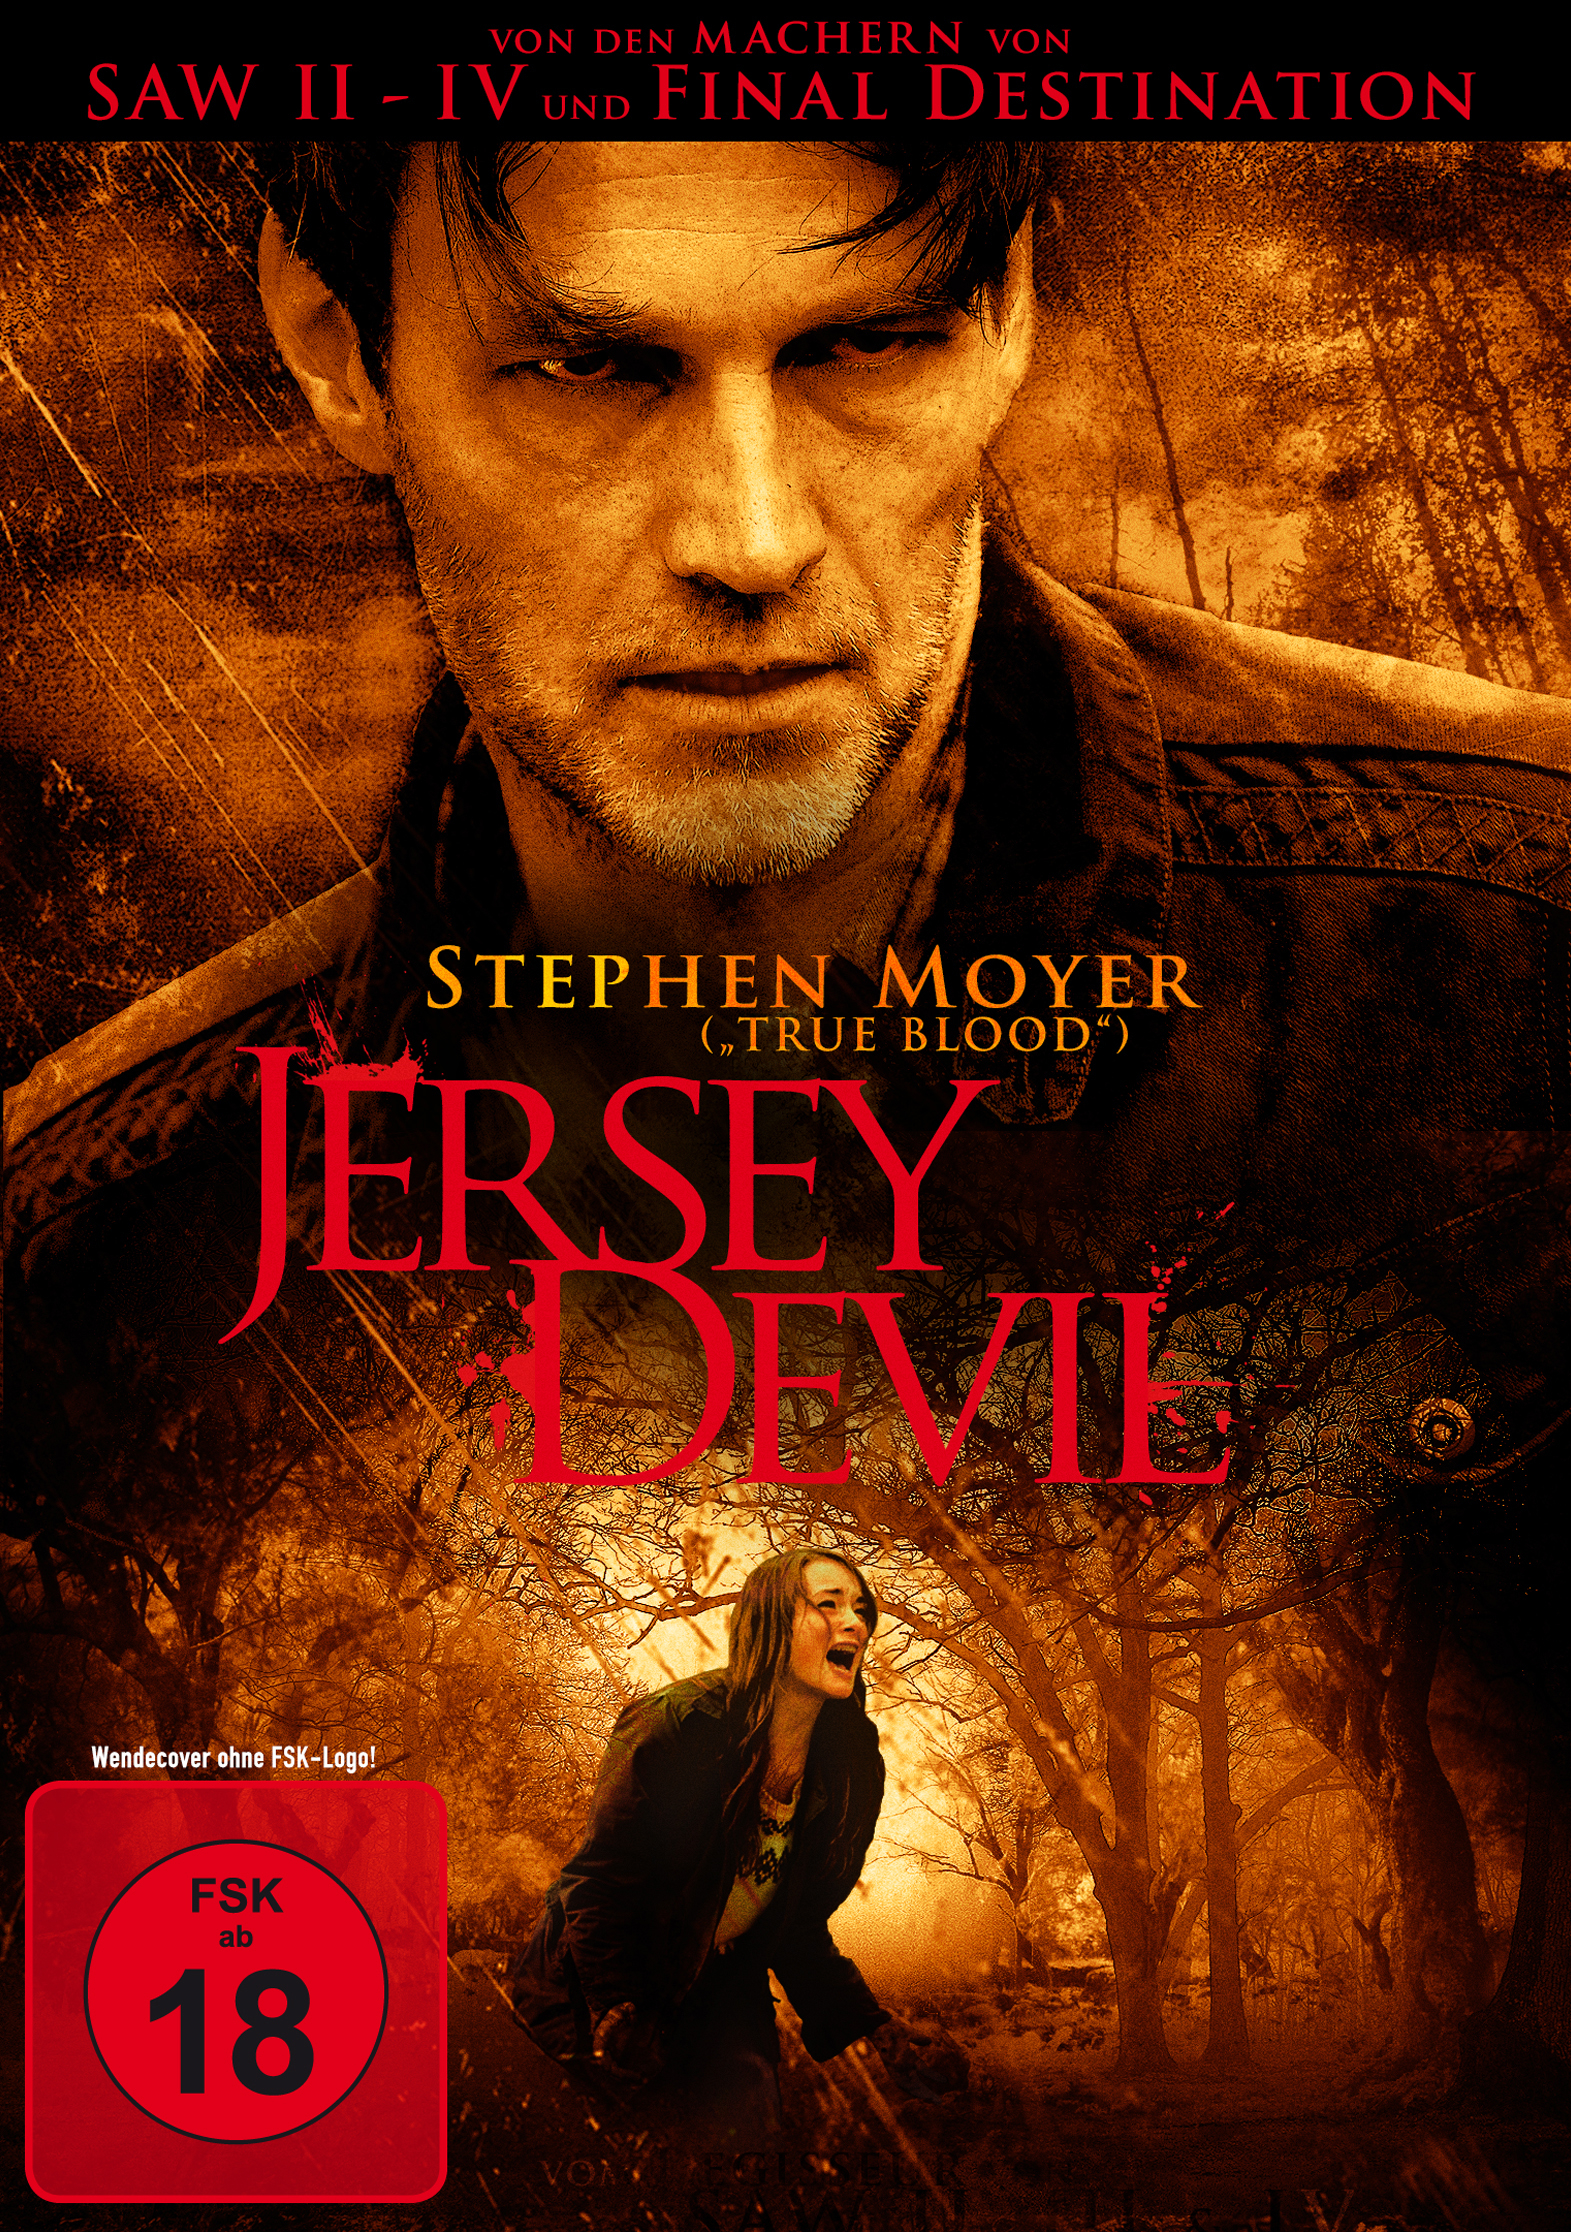 The Barrens aka Jersey Devil (2012) – FILMOVI_S_RUBA